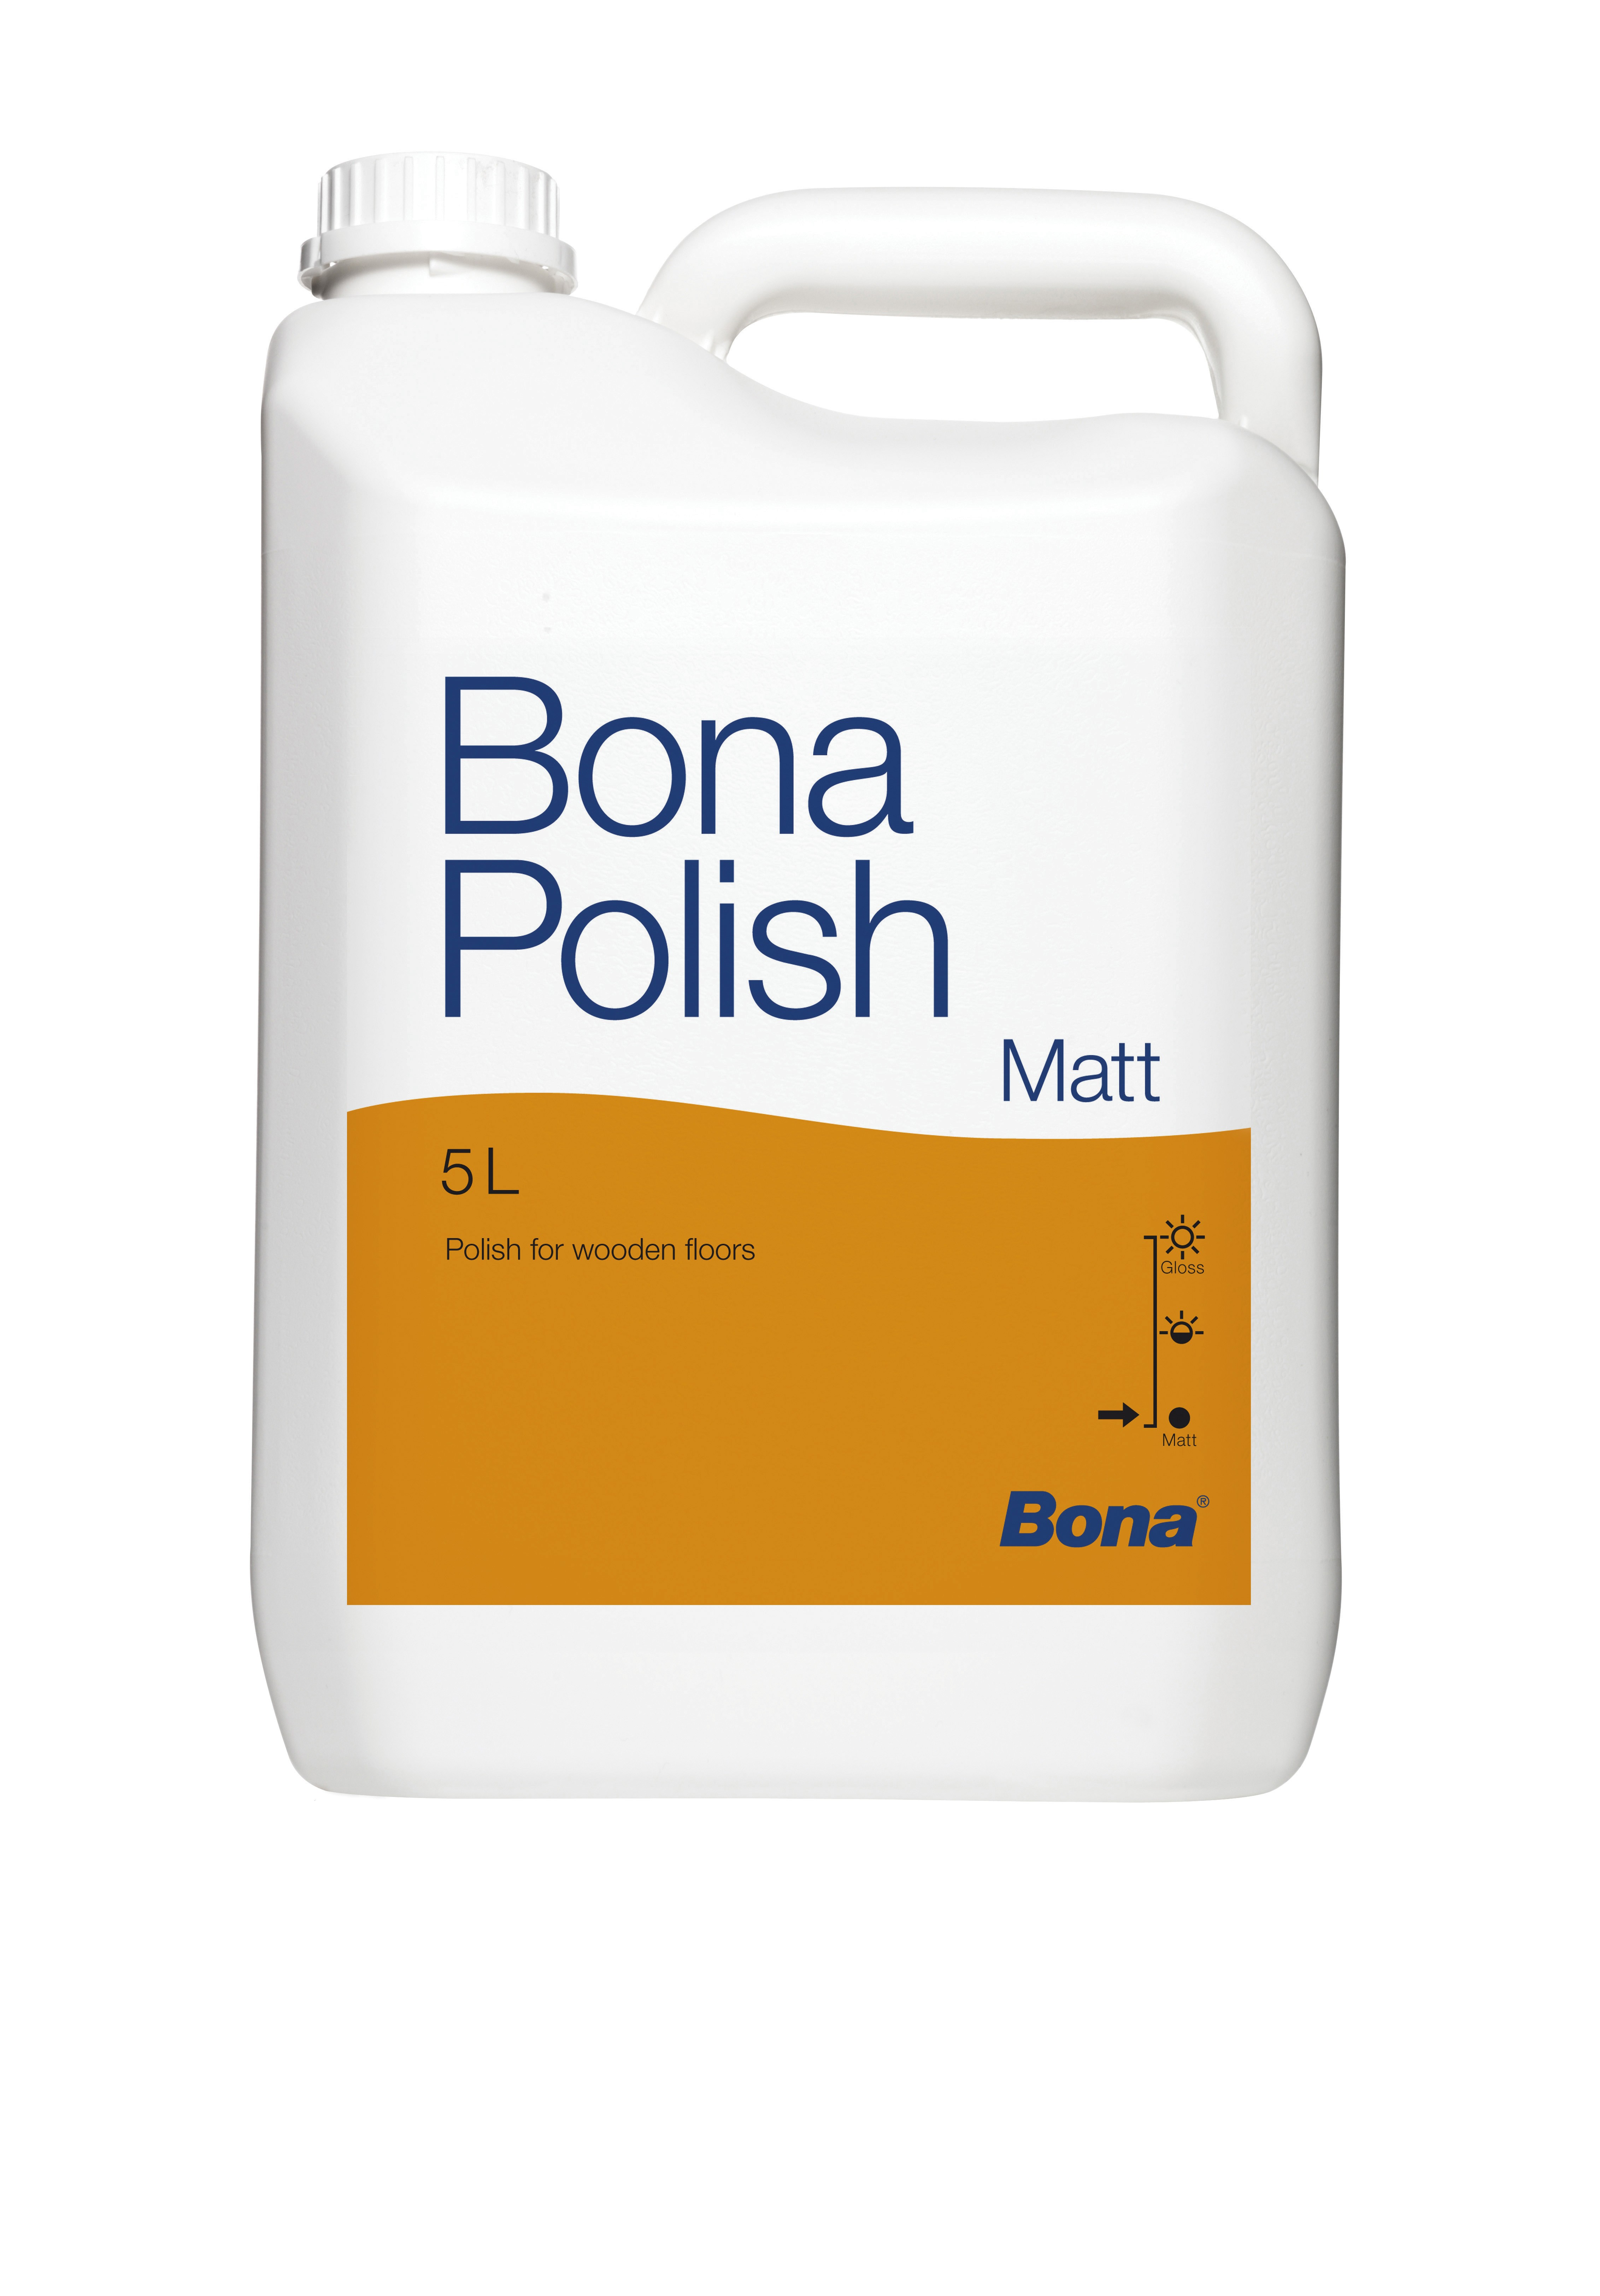 Bona Polish Matt 5L